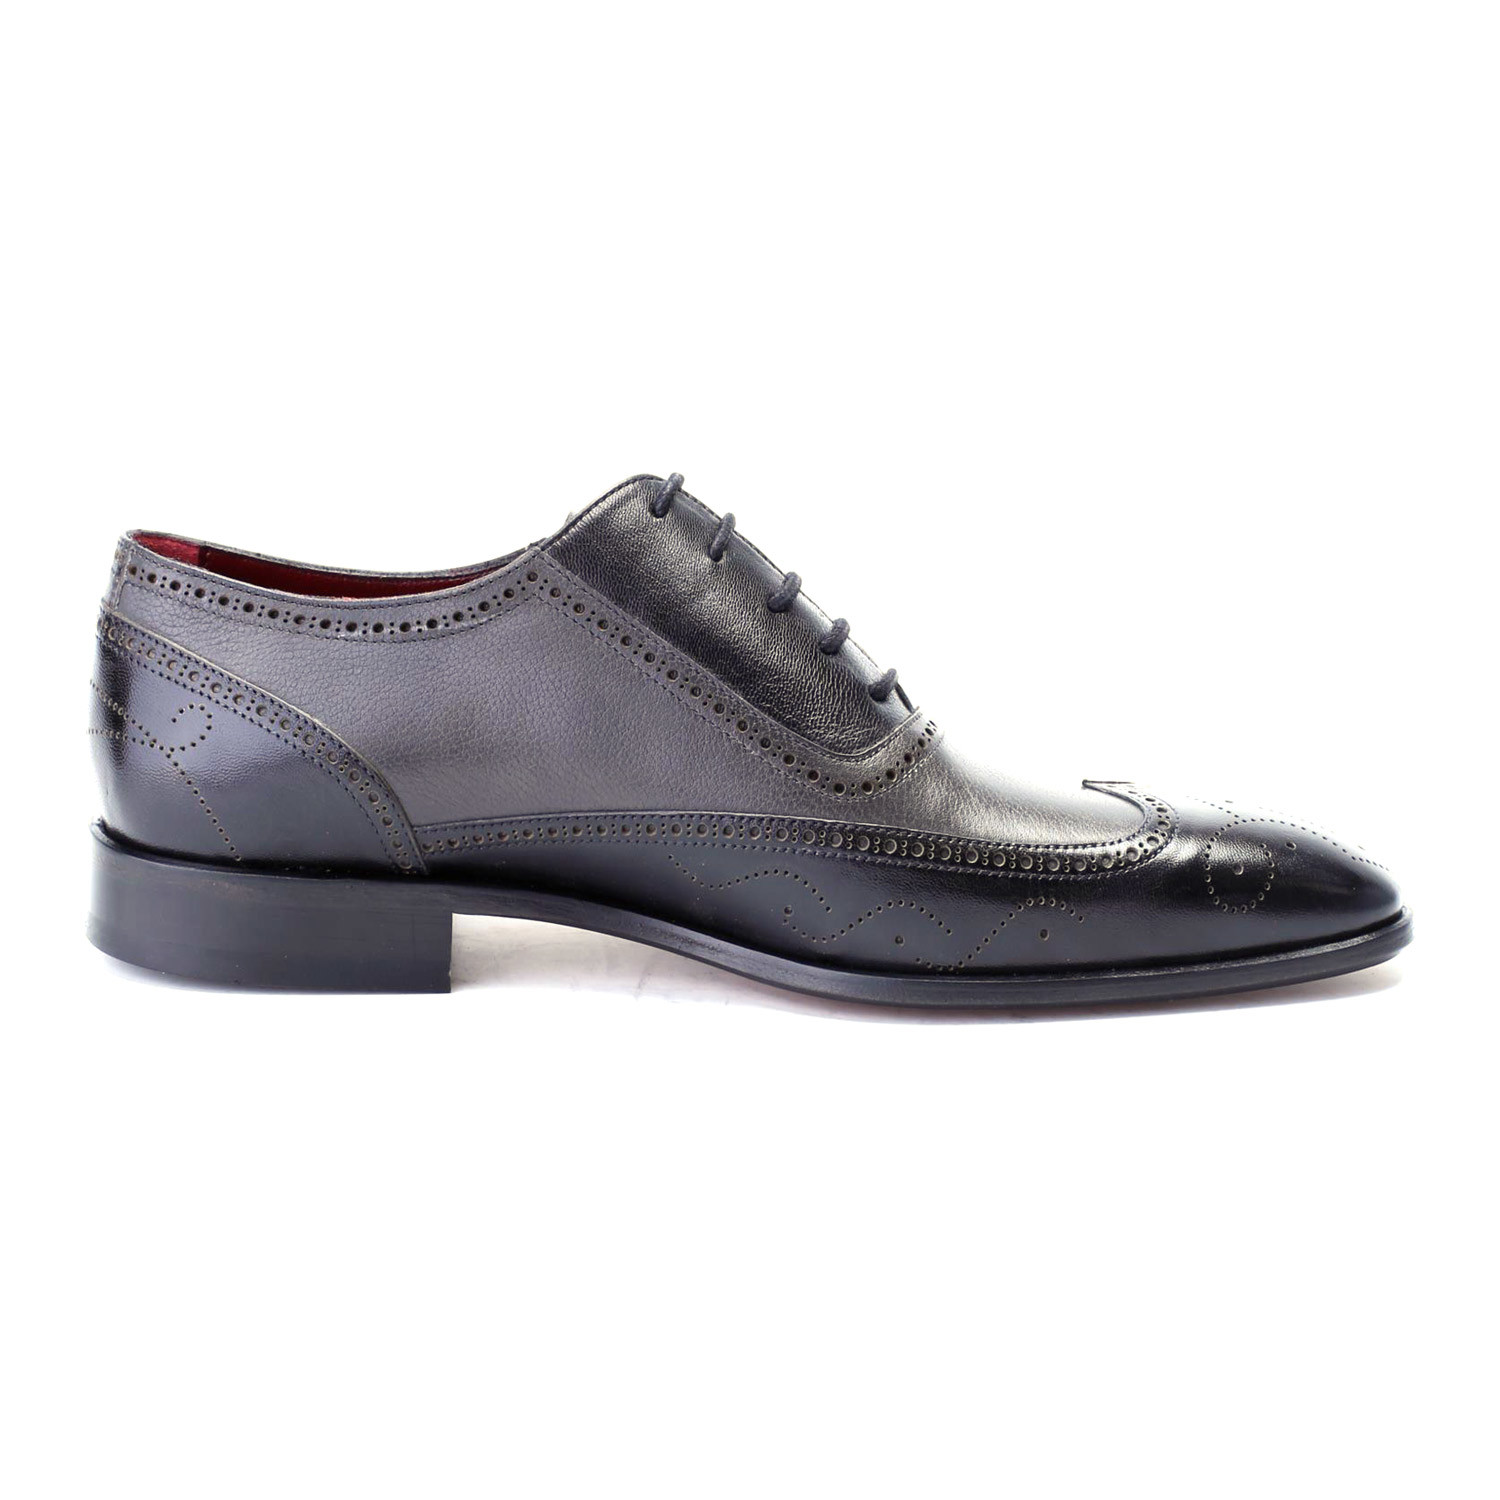 Two-Toned Dress Shoe // Black, Grey (Euro: 39) - Deckard ...